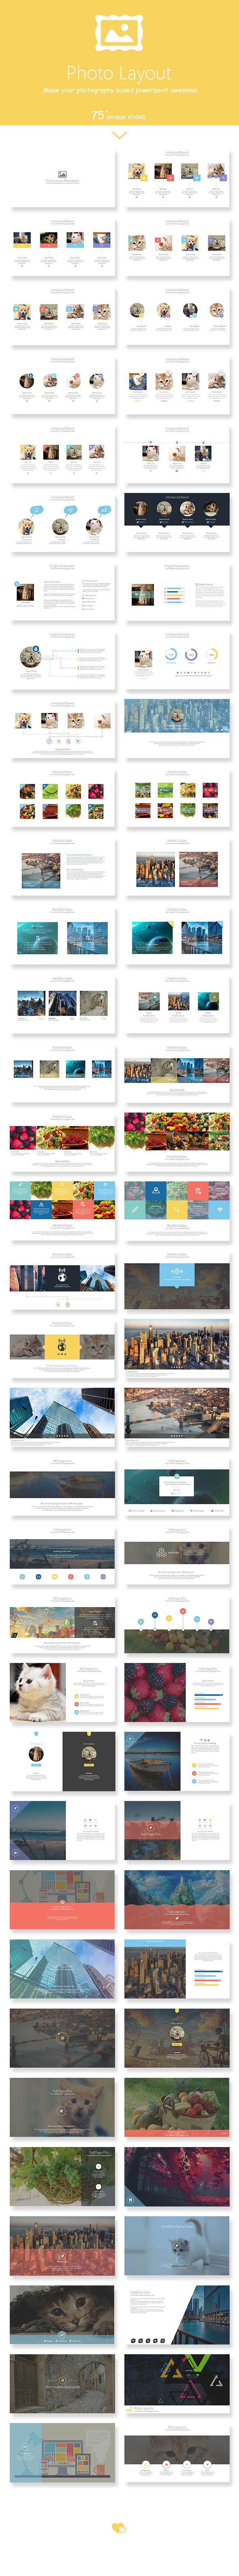 Photo Layout Powerpoint Presentation Template - Creative PowerPoint Templates